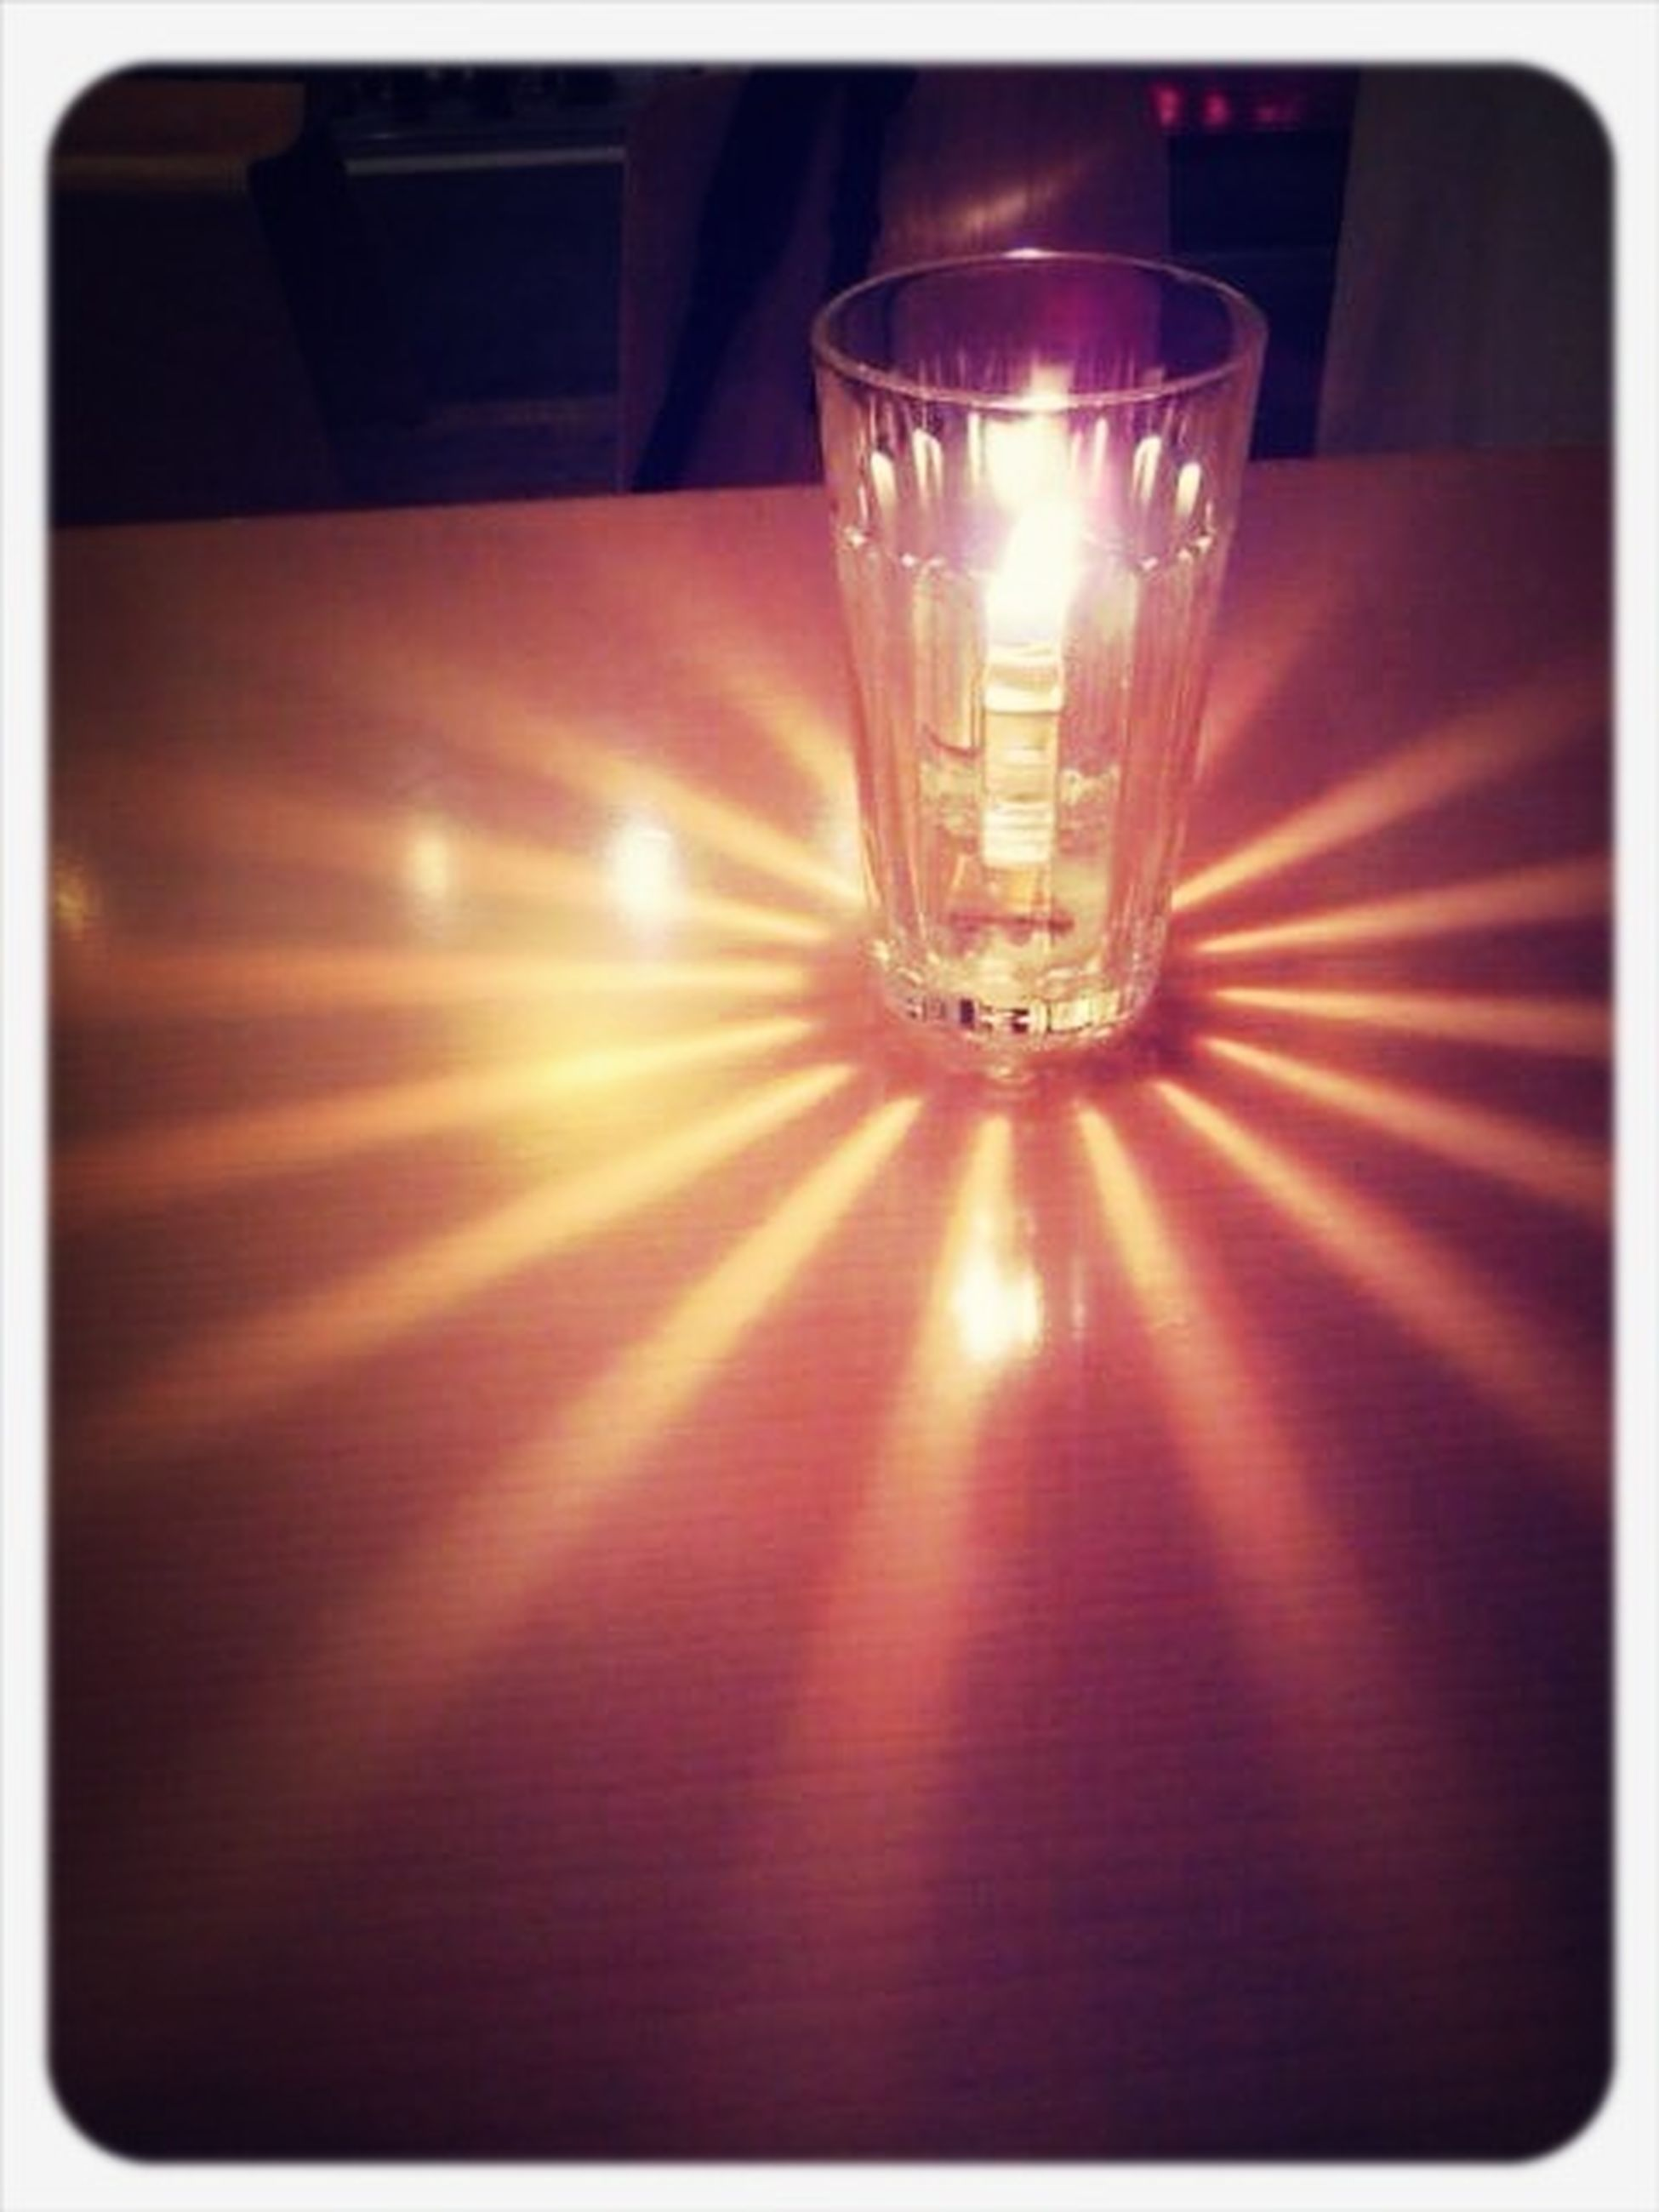 indoors, illuminated, transfer print, lighting equipment, glowing, auto post production filter, lit, light - natural phenomenon, close-up, glass - material, electric light, electricity, table, no people, decoration, light, candle, electric lamp, ceiling, home interior